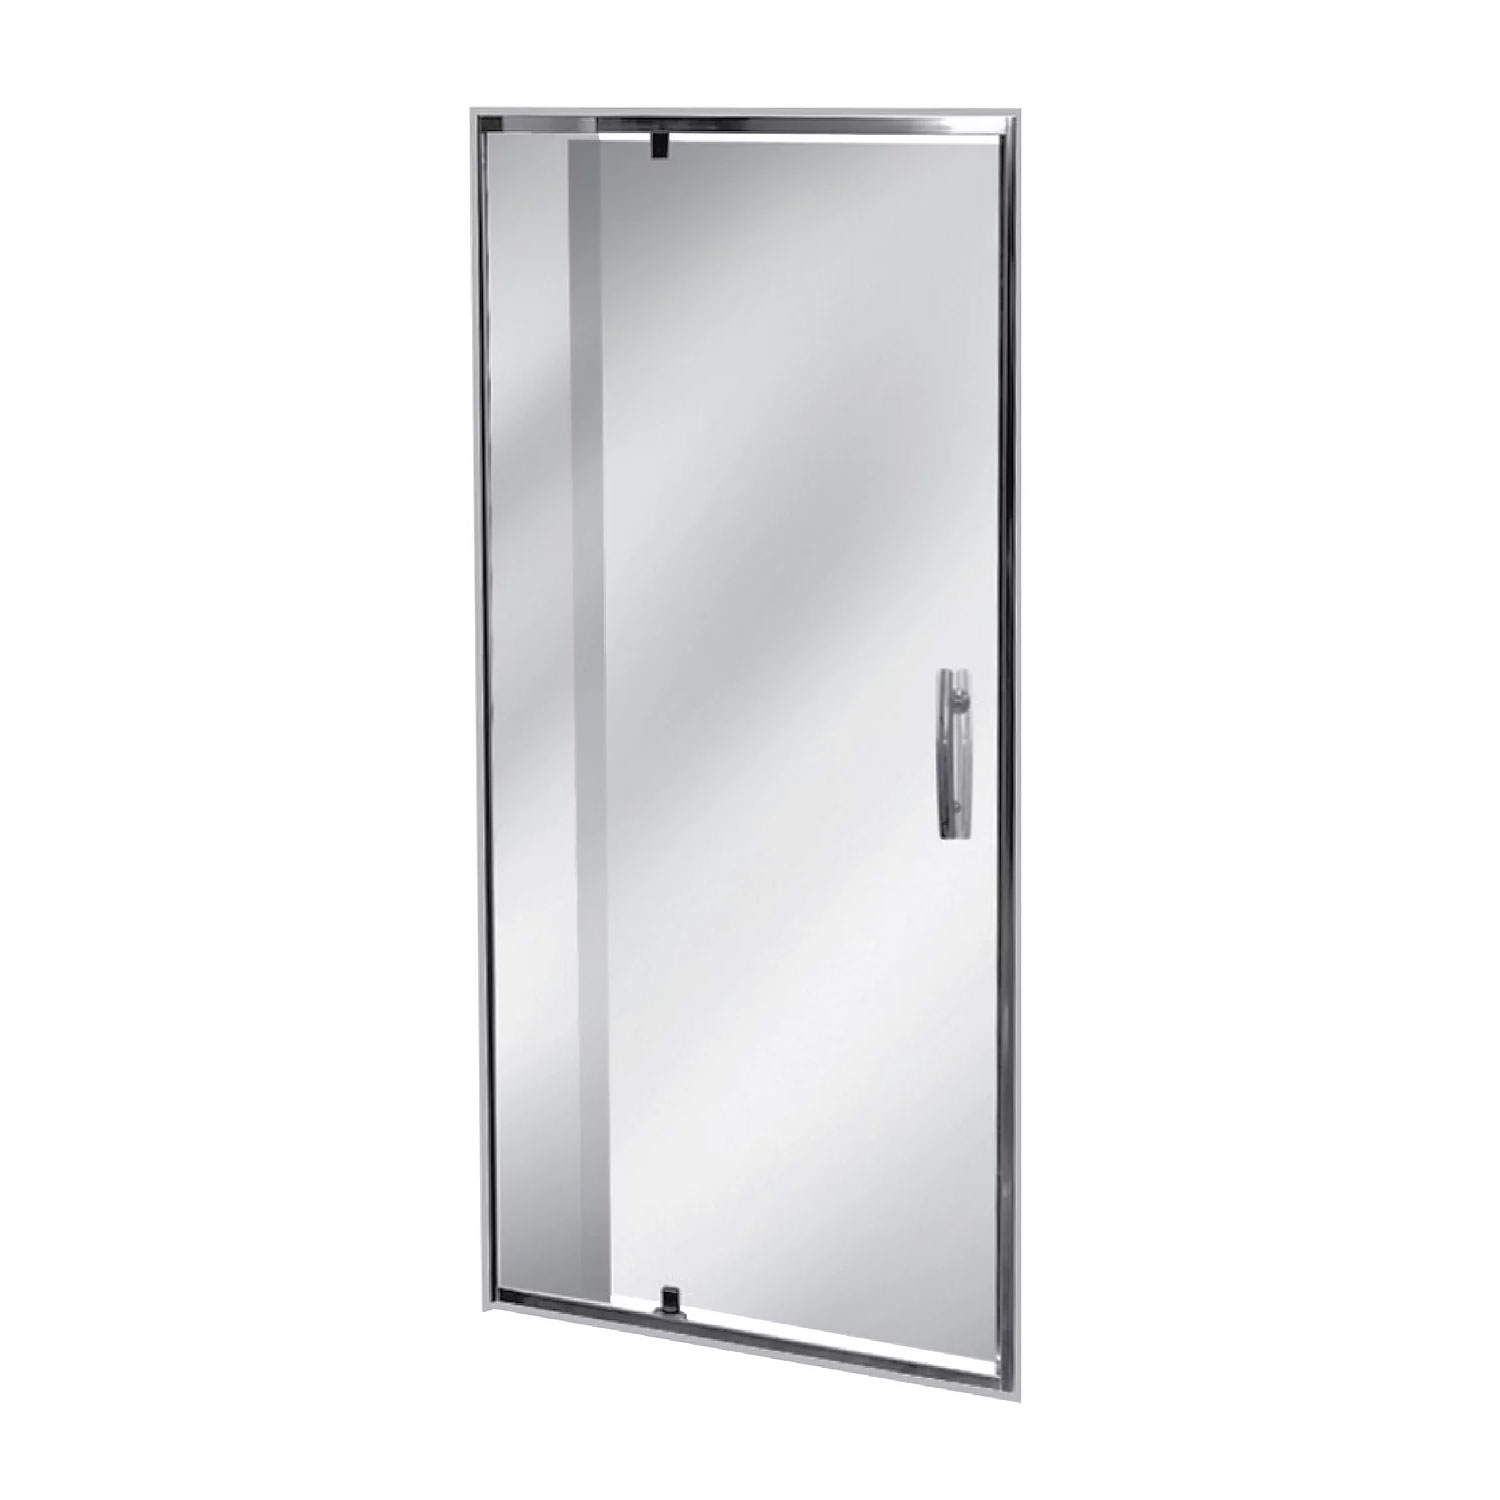 Adjustable Pivot Shower Doors Symphony Showers